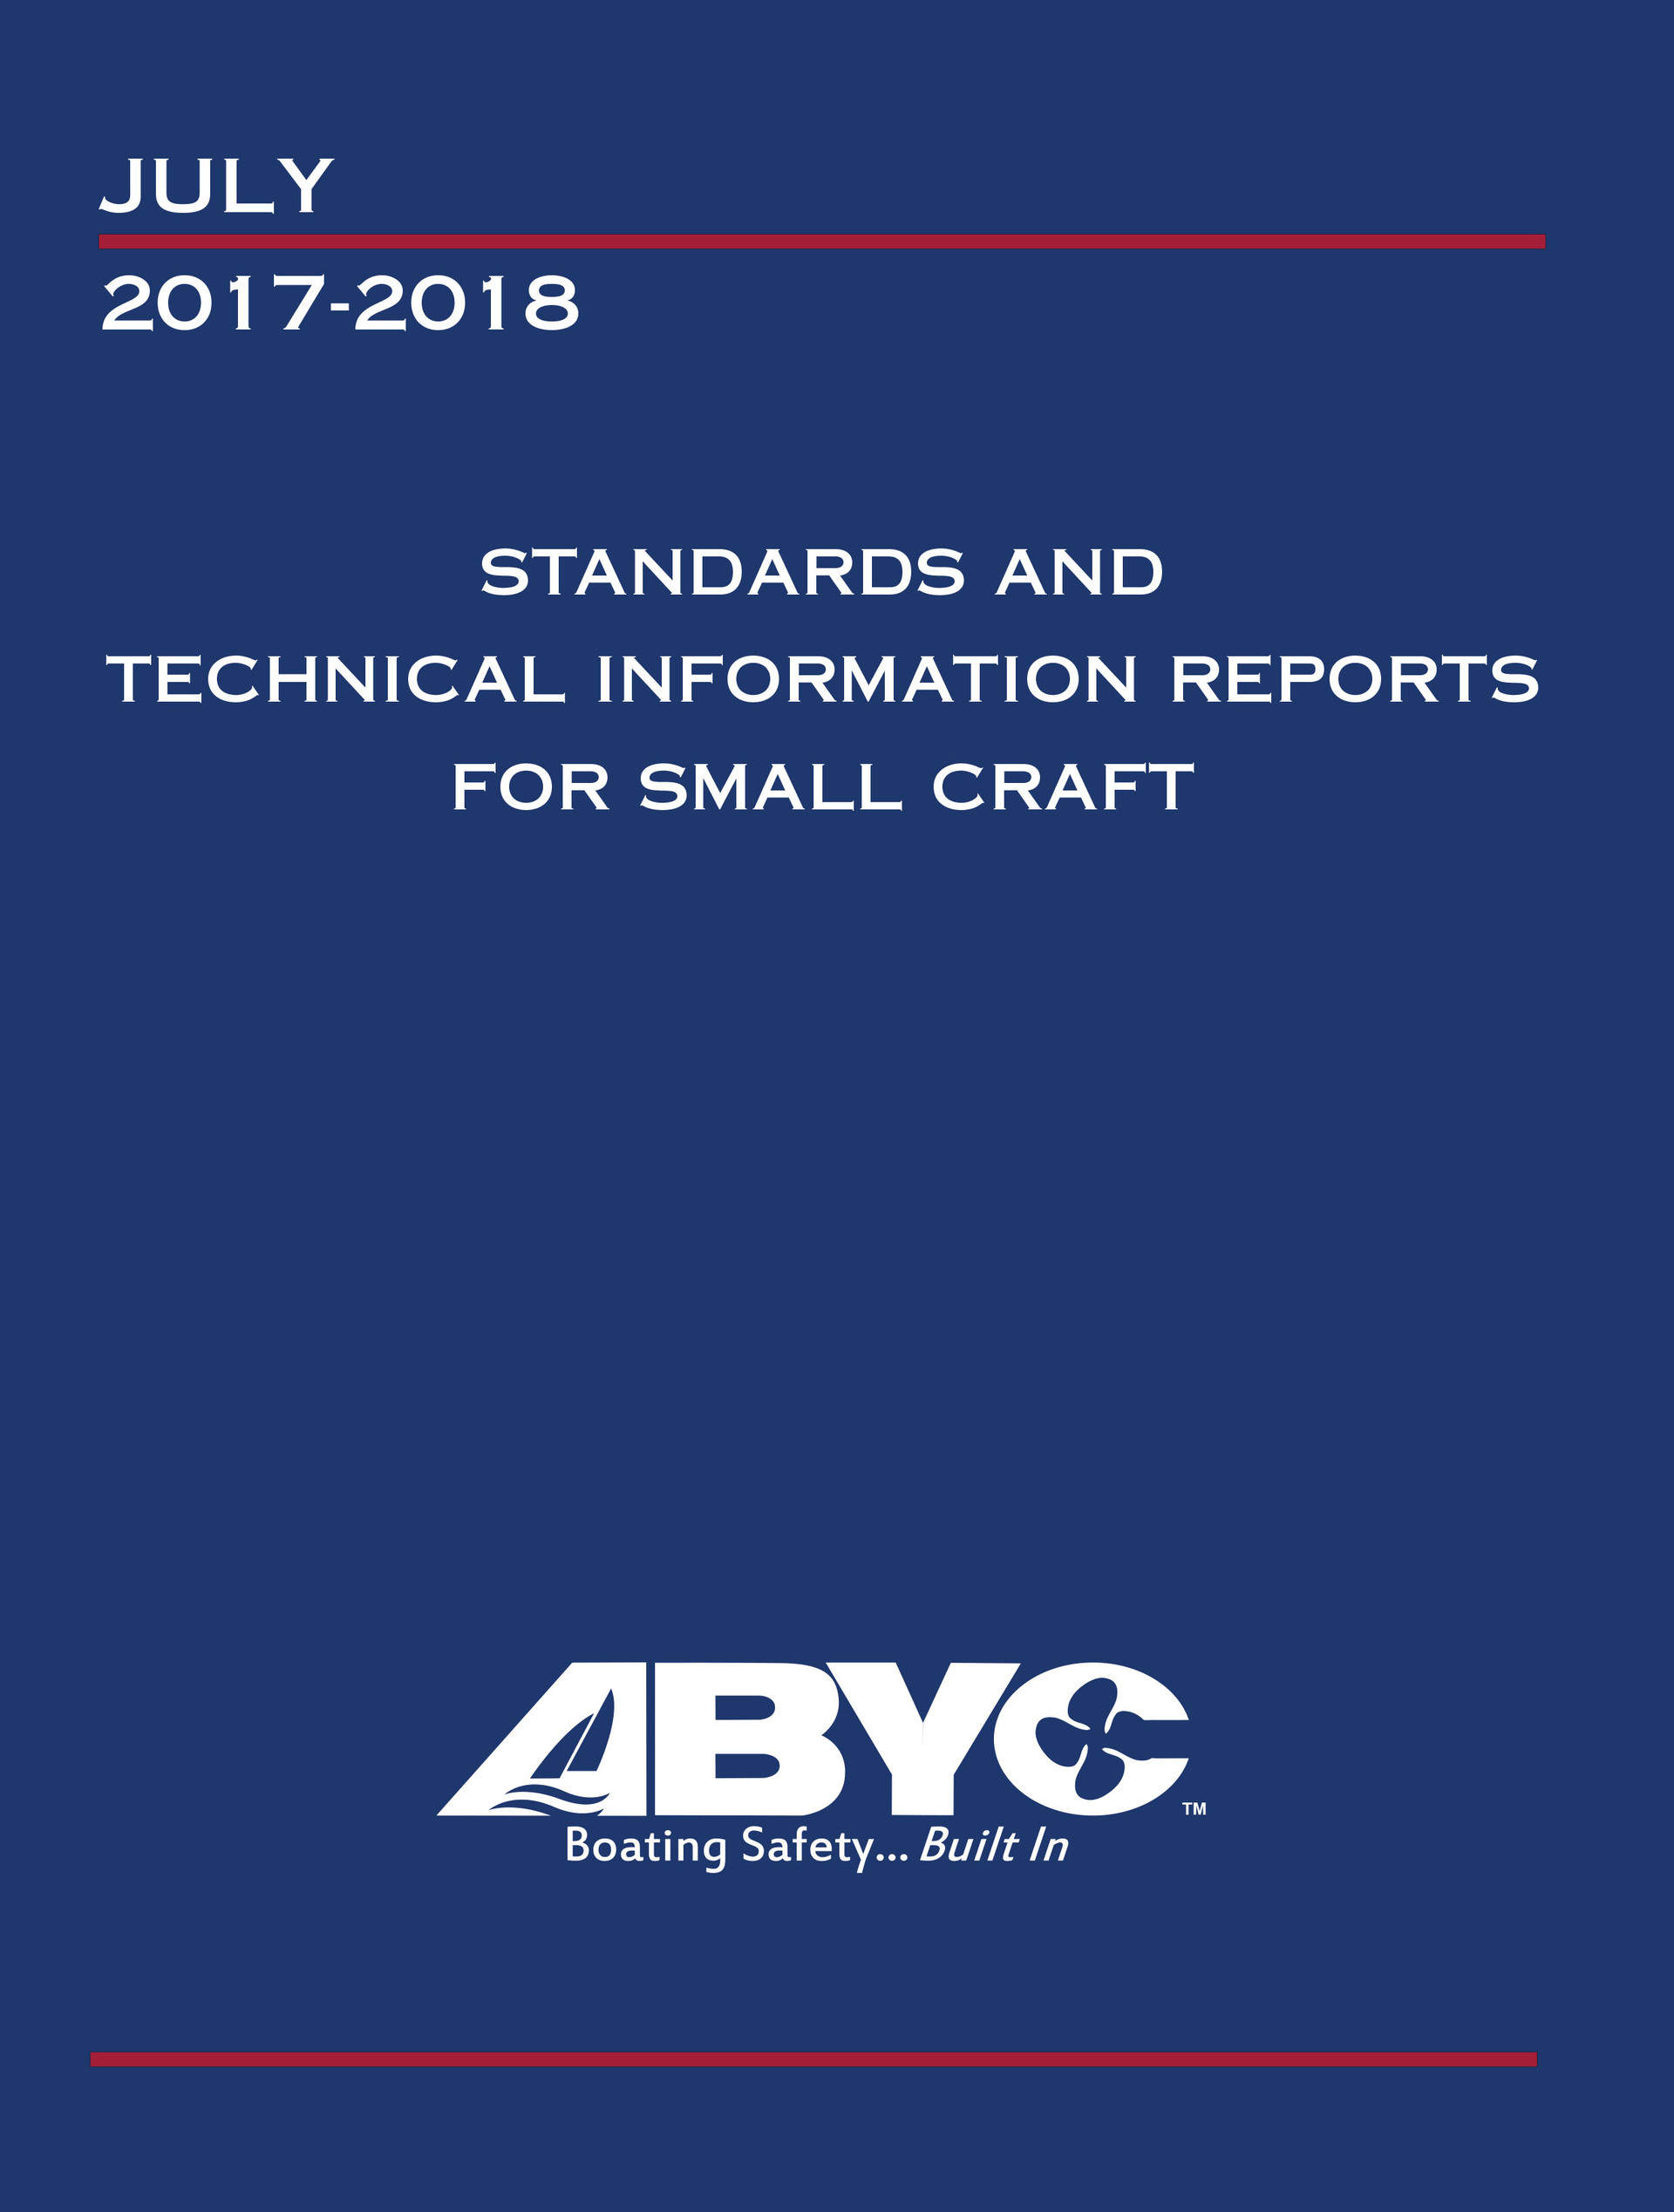 Abyc wiring standards books diy enthusiasts wiring diagrams dlhardware rh dnl com abyc color code marine wiring greentooth Images